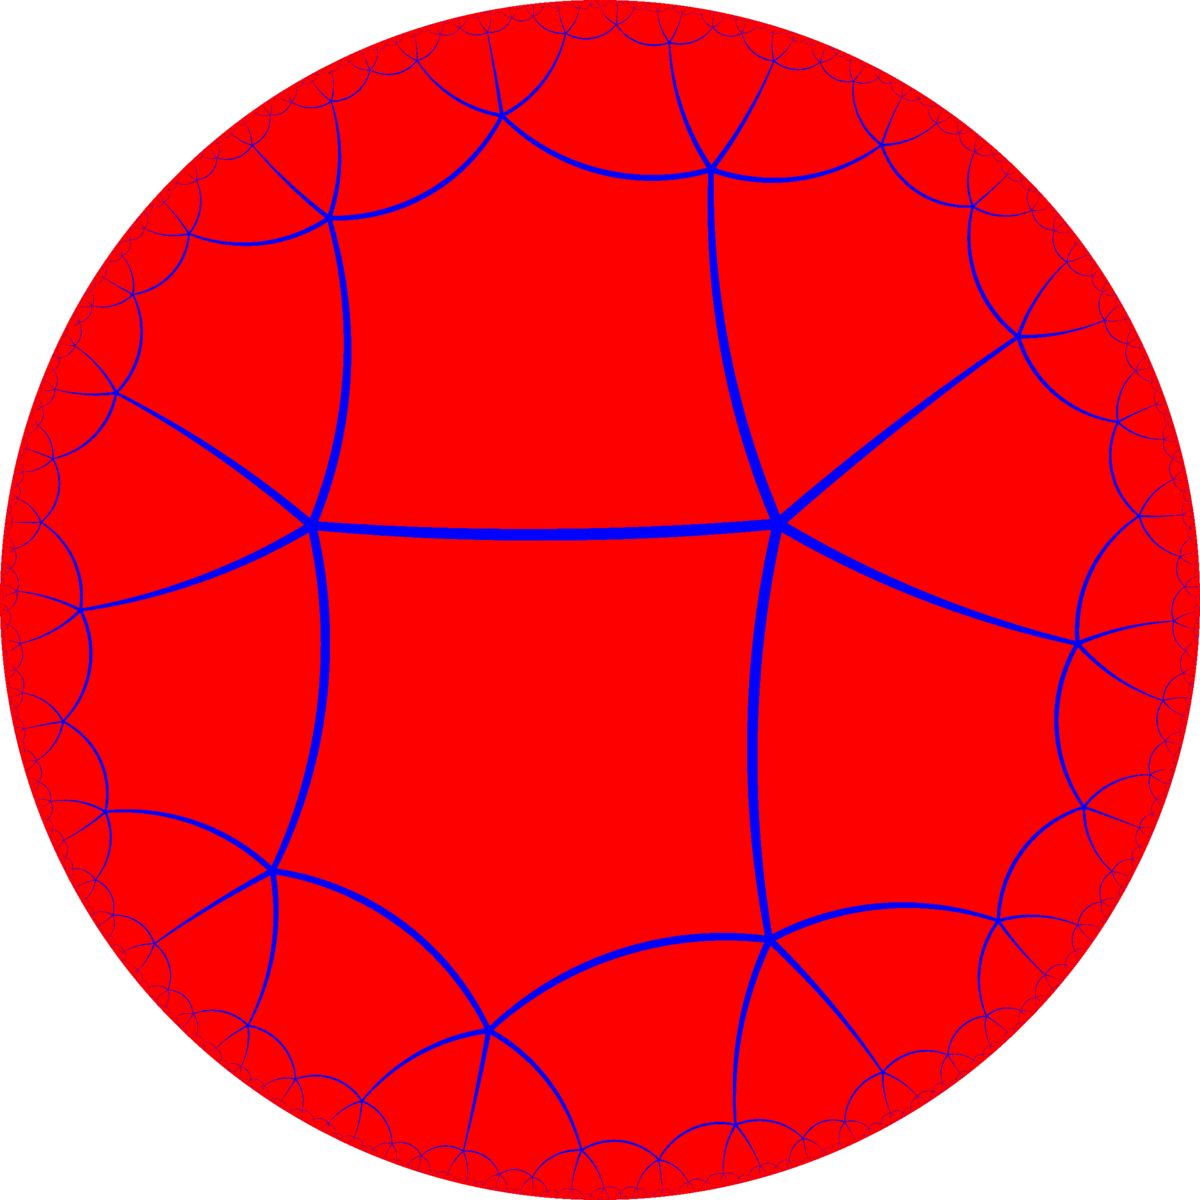 Order pentagonal tiling wikipedia. Marbles clipart red sphere